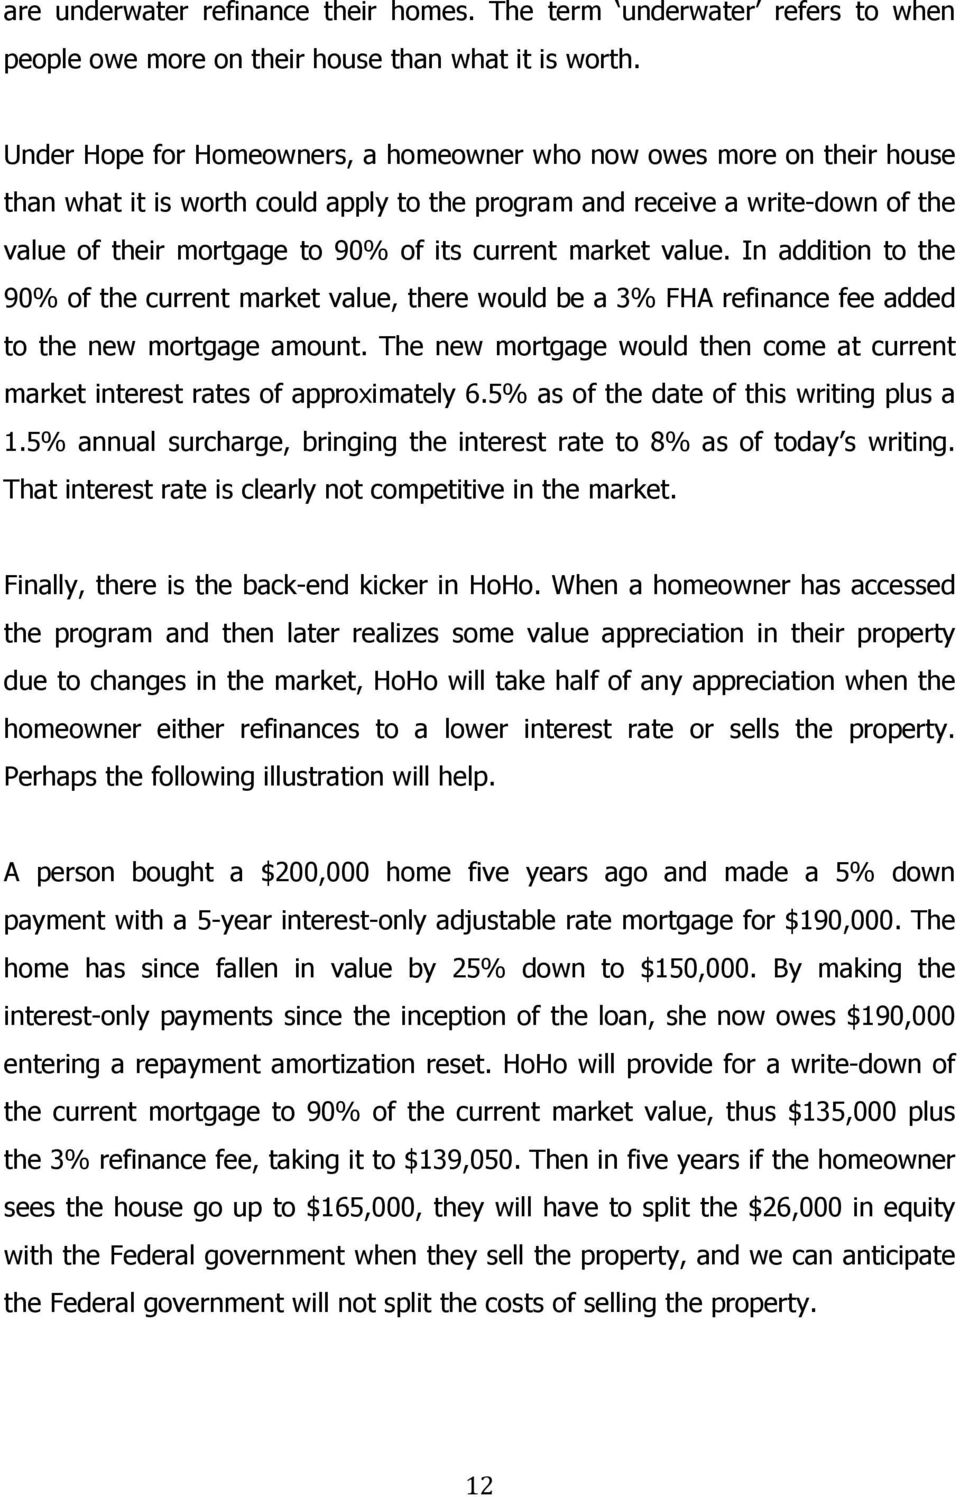 market value. In addition to the 90% of the current market value, there would be a 3% FHA refinance fee added to the new mortgage amount.